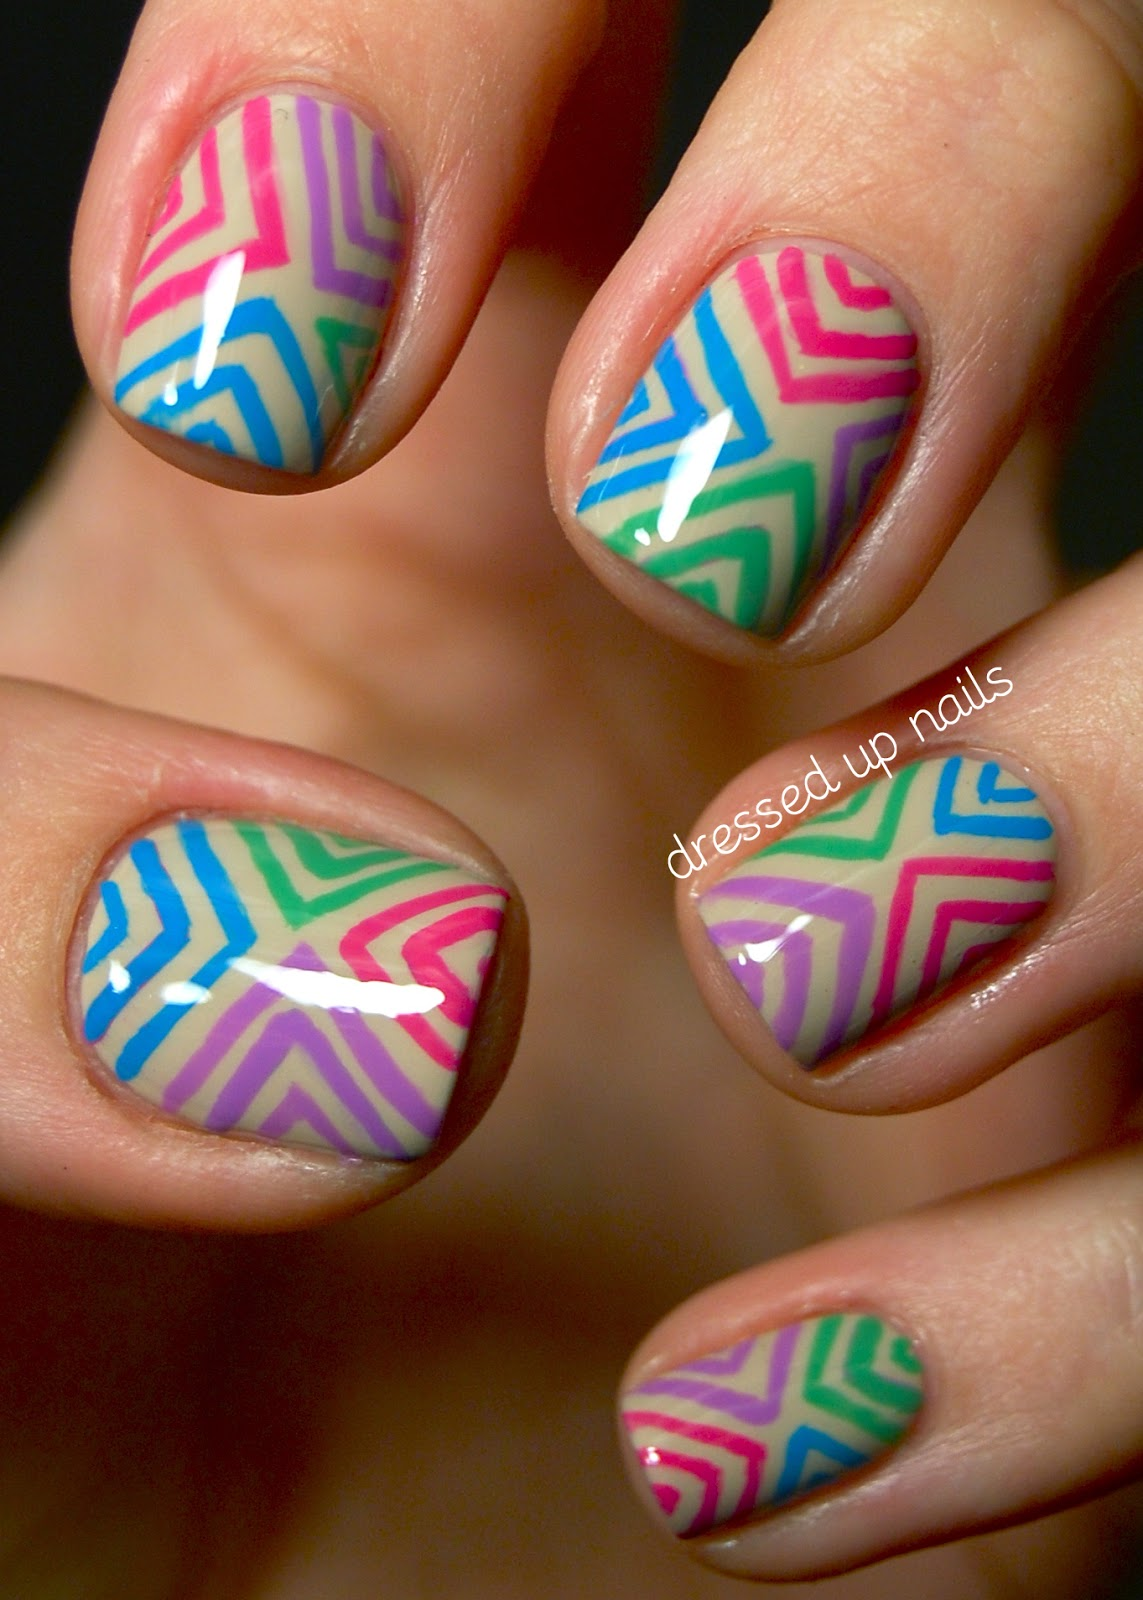 Dressed Up Nails: Colorful offset chevron nail art on a nude base